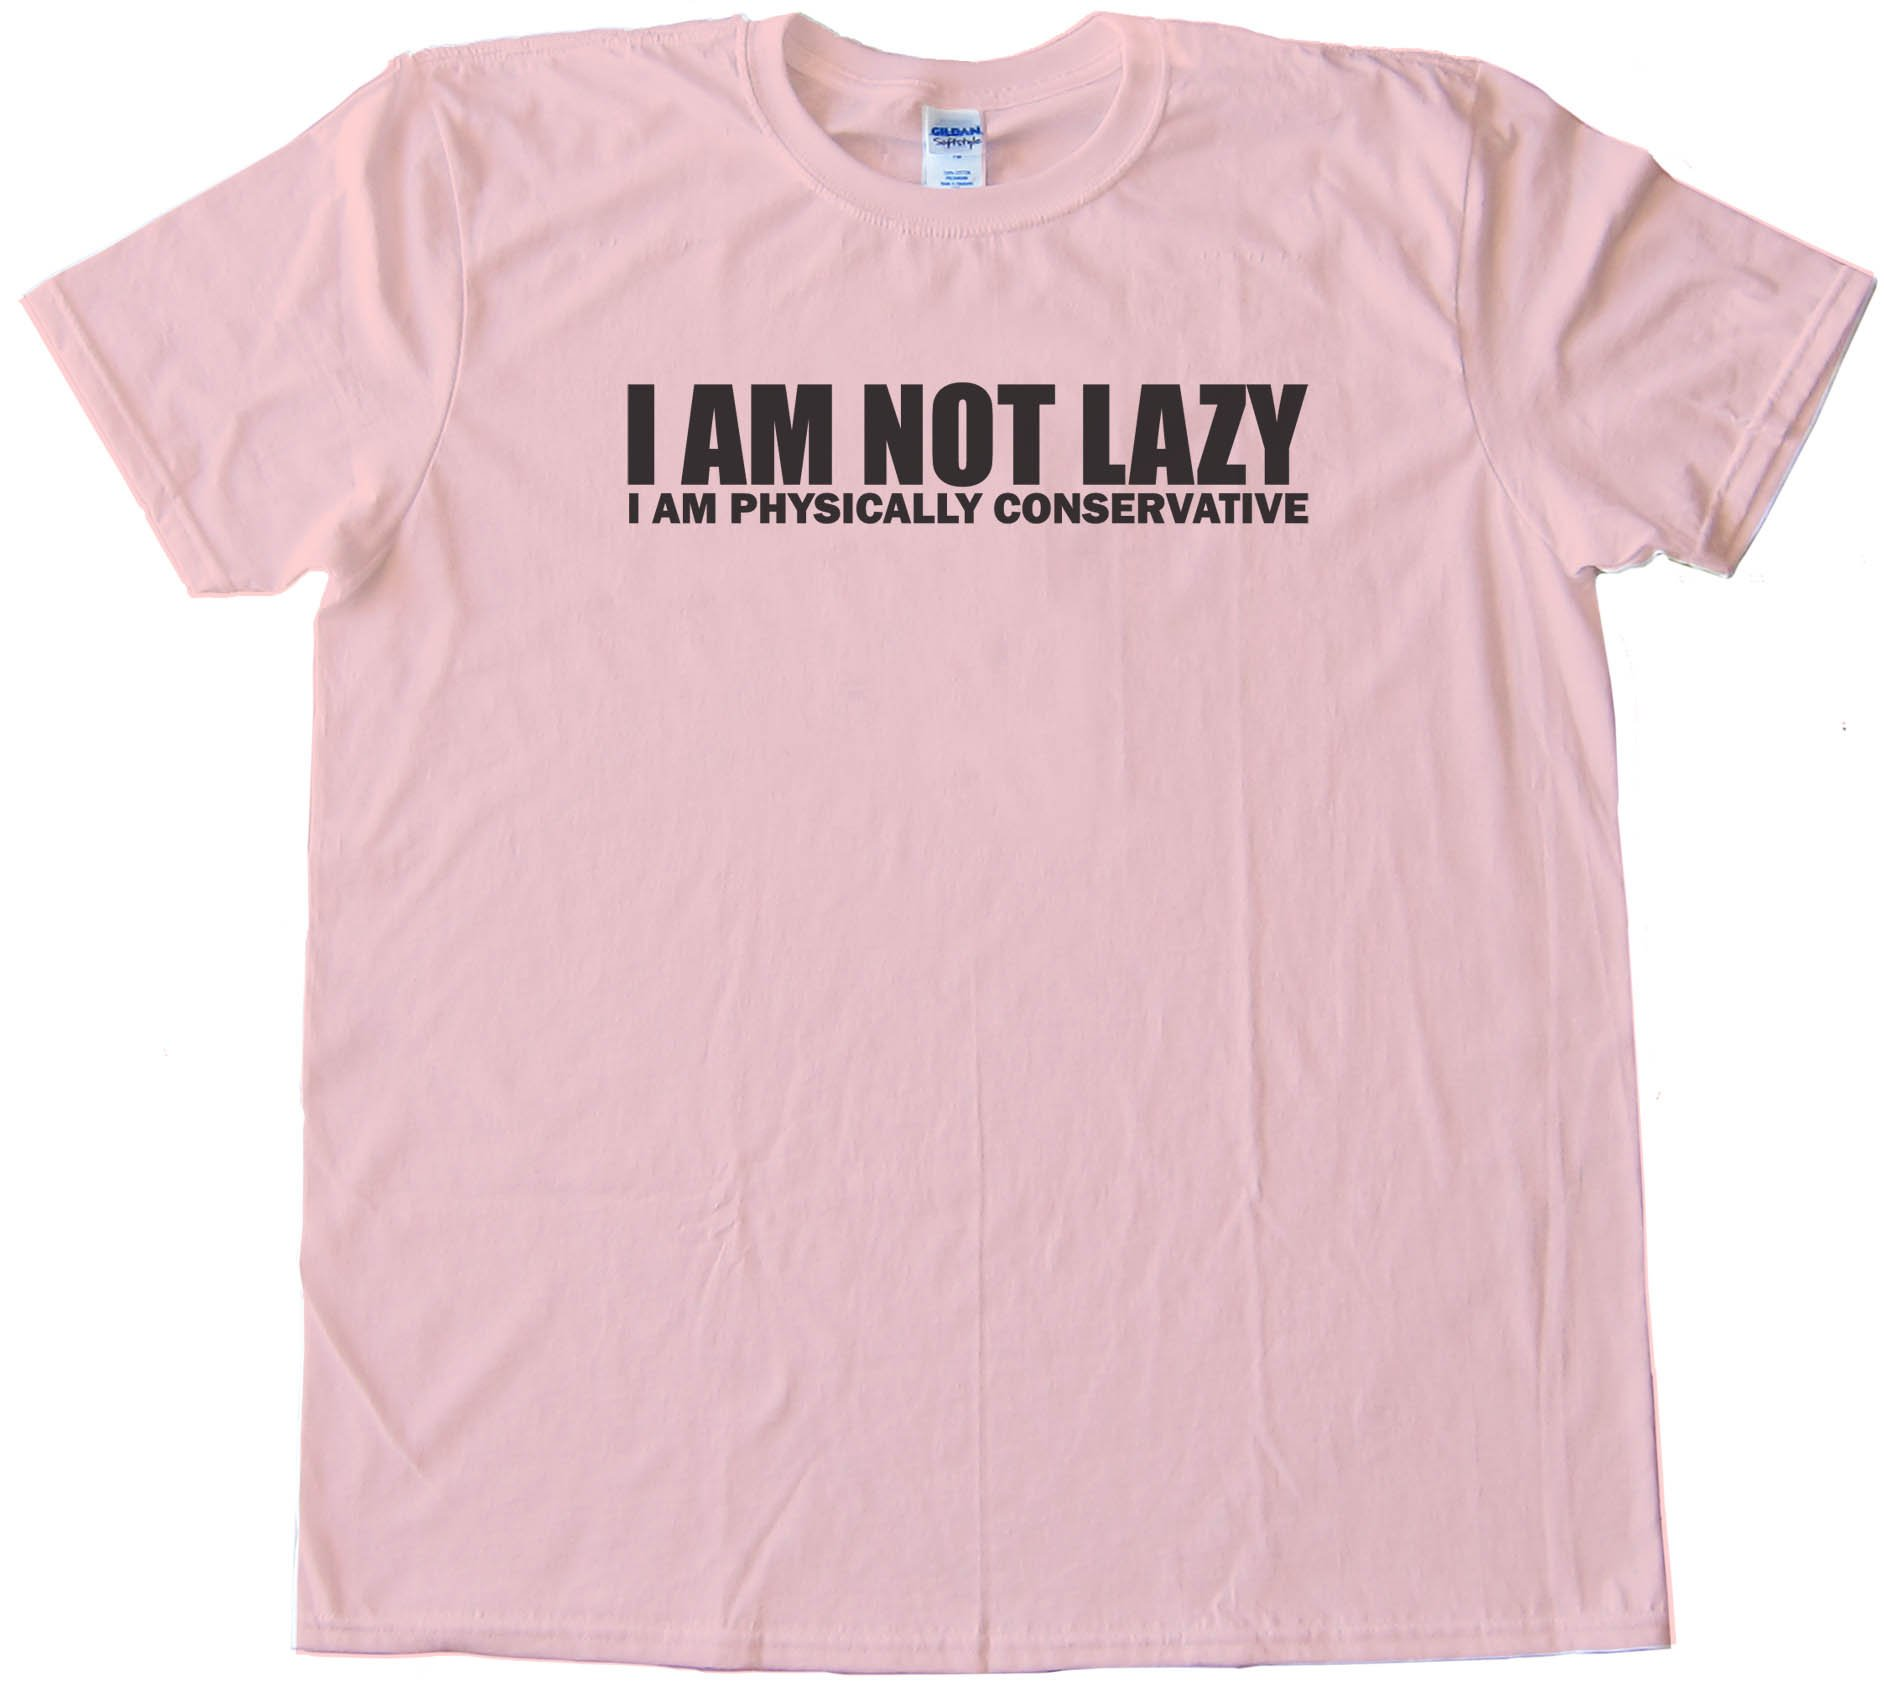 I Am Not Lazy - I Am Physically Conservative - Tee Shirt